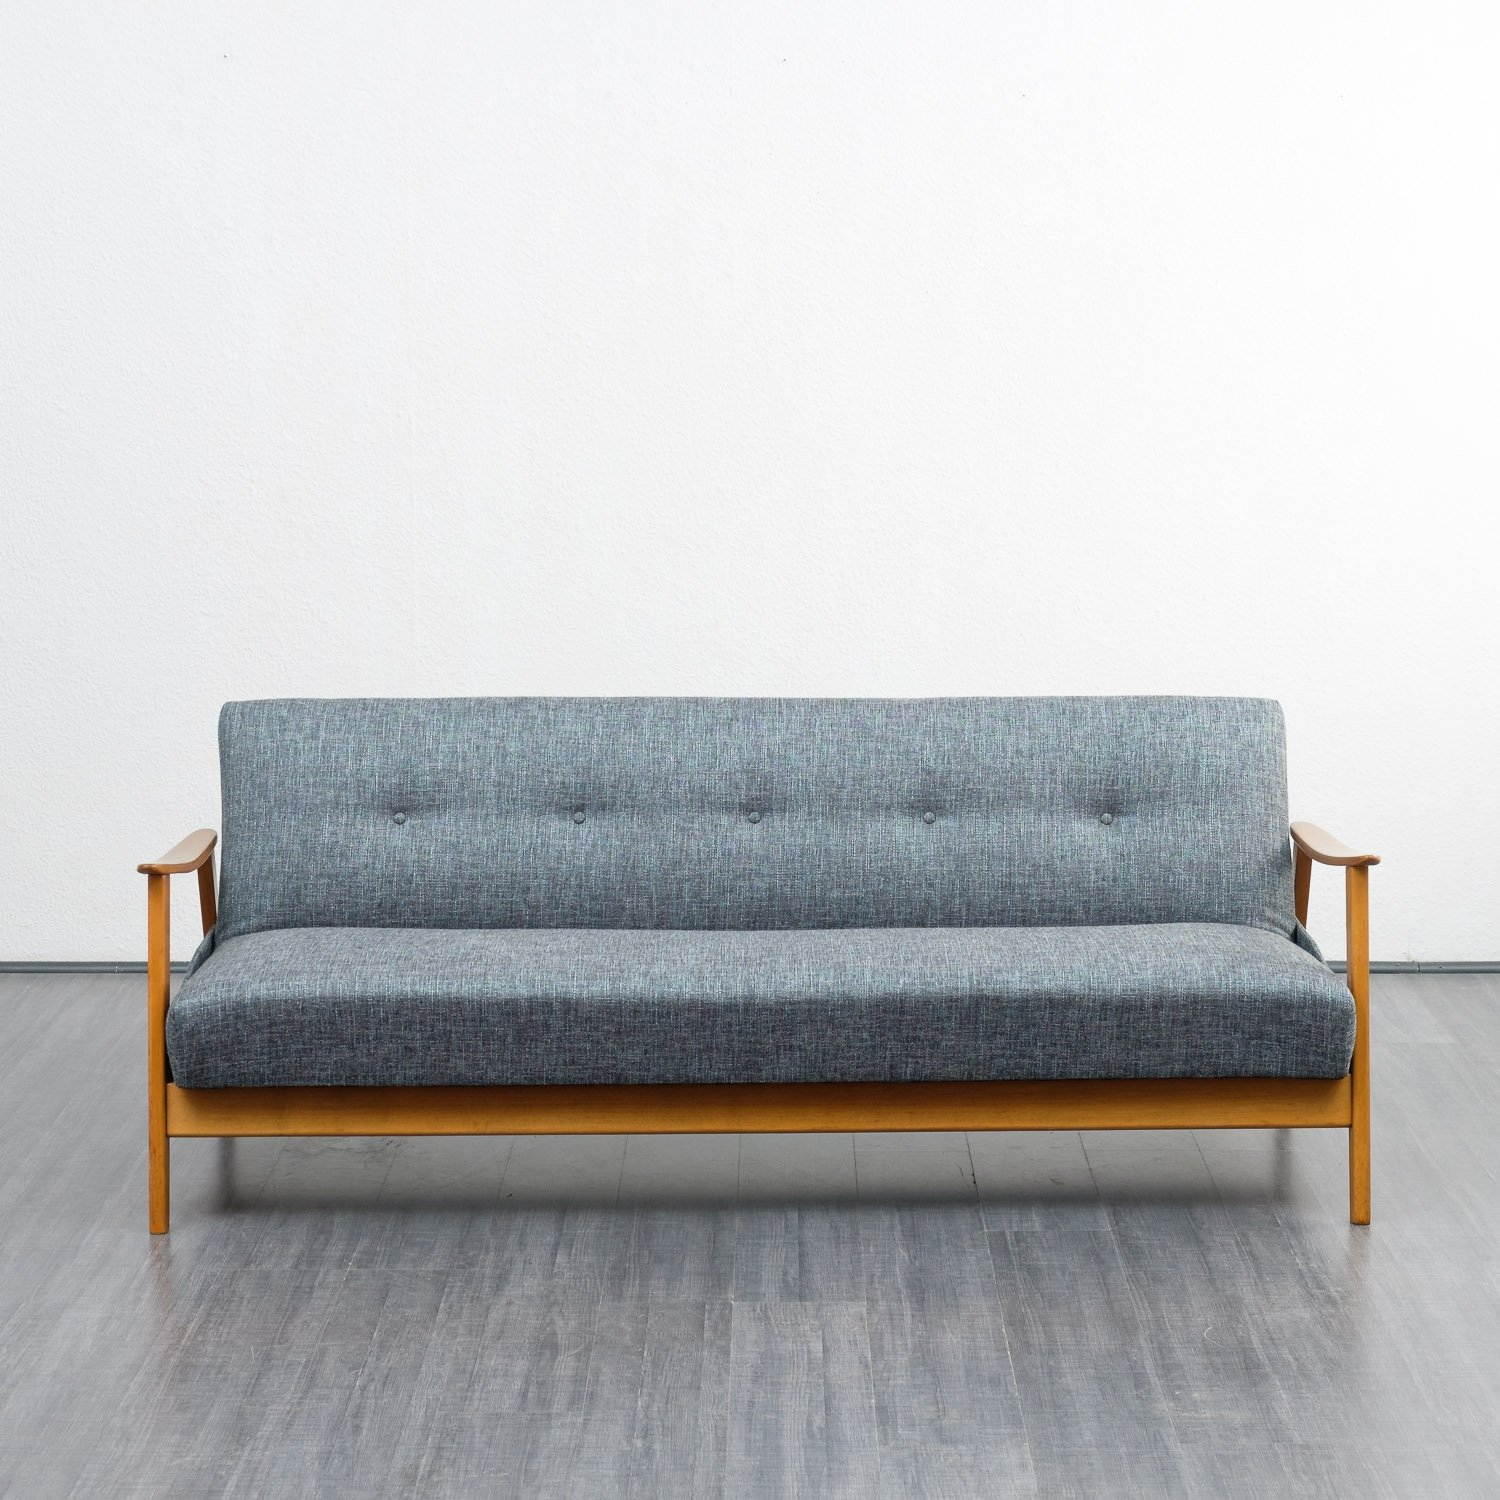 Enjoyable Midcentury Sofa With Fold Out Guest Bed 1960S Machost Co Dining Chair Design Ideas Machostcouk